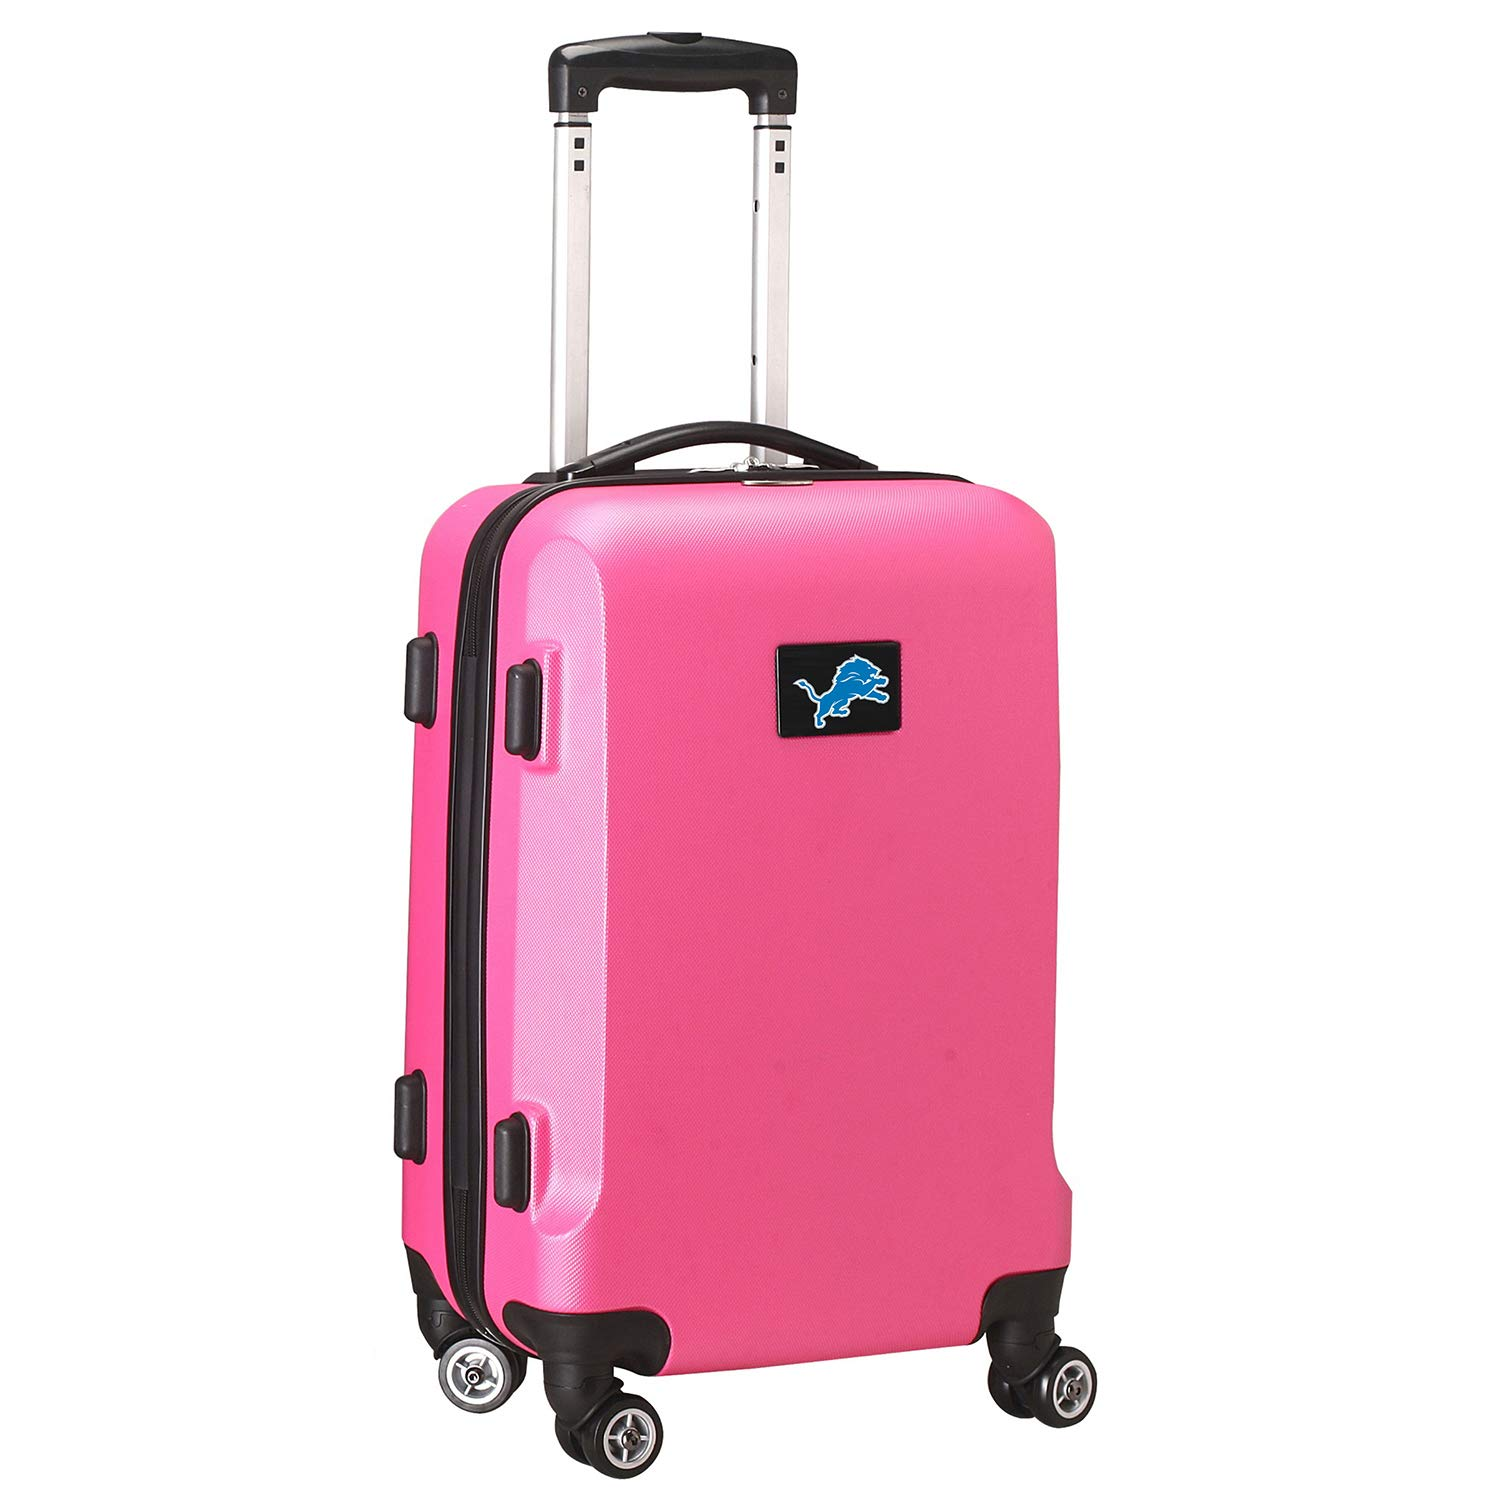 NFL Detroit Lions Carry-On Hardcase Luggage Spinner, Pink